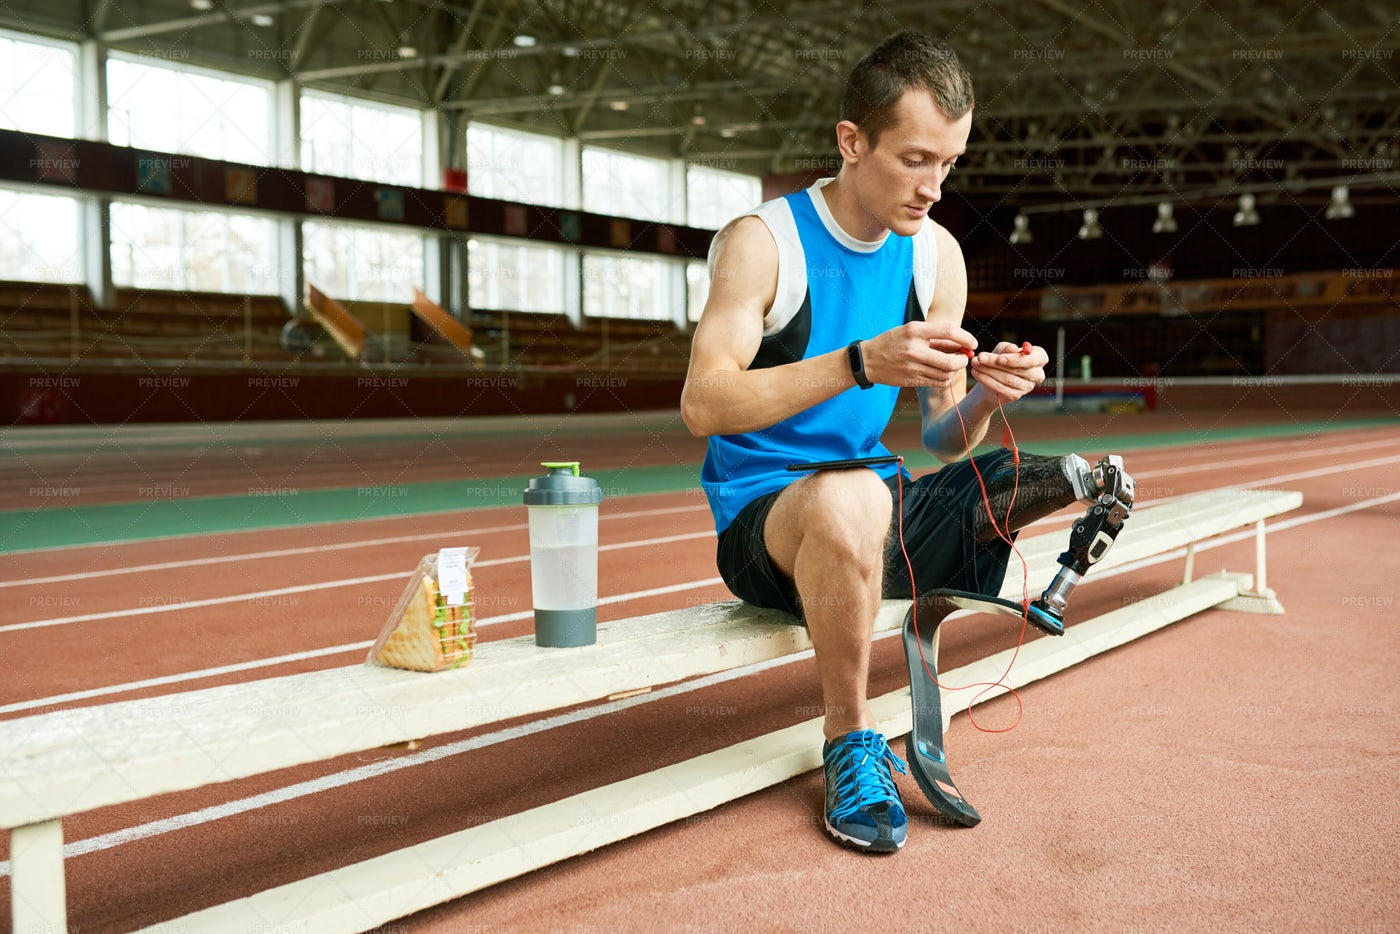 Disabled Athlete  Taking Break From...: Stock Photos